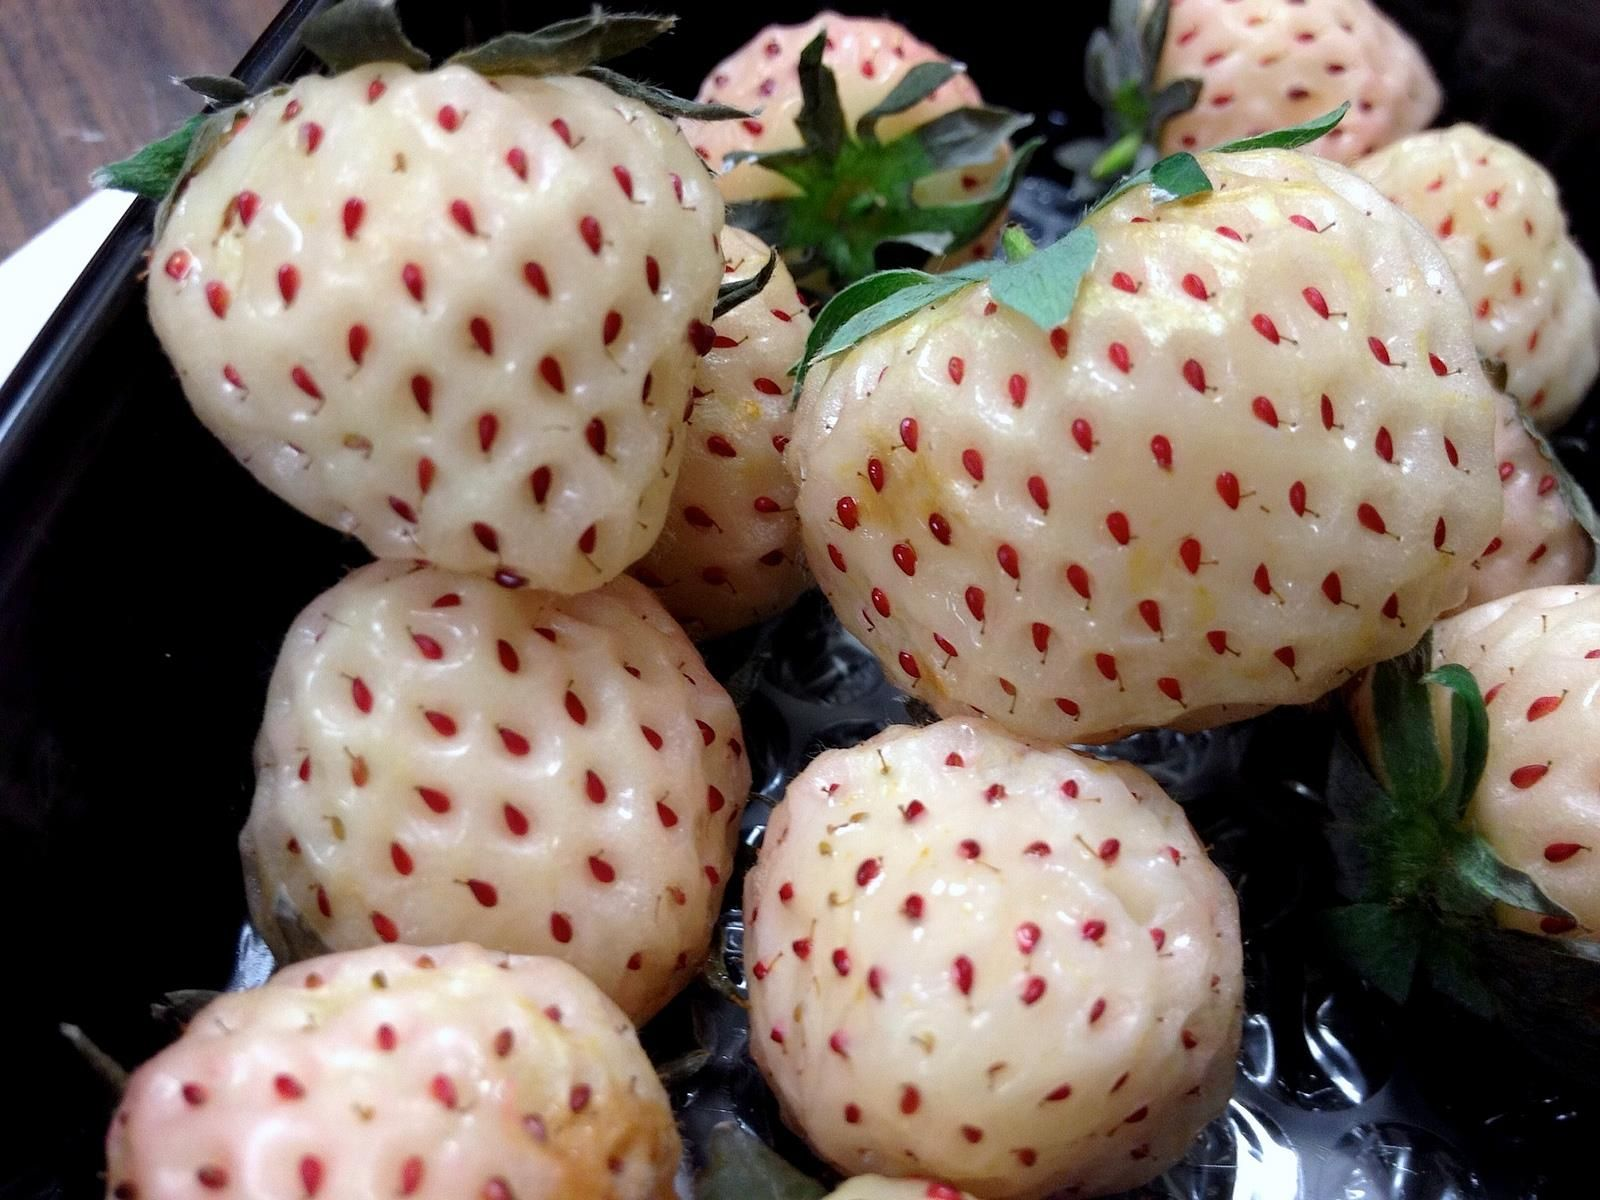 Your Go-to Guide on How to Grow Pineberries - I didn't even knew these existed. Here is everything you need to know about pineberries